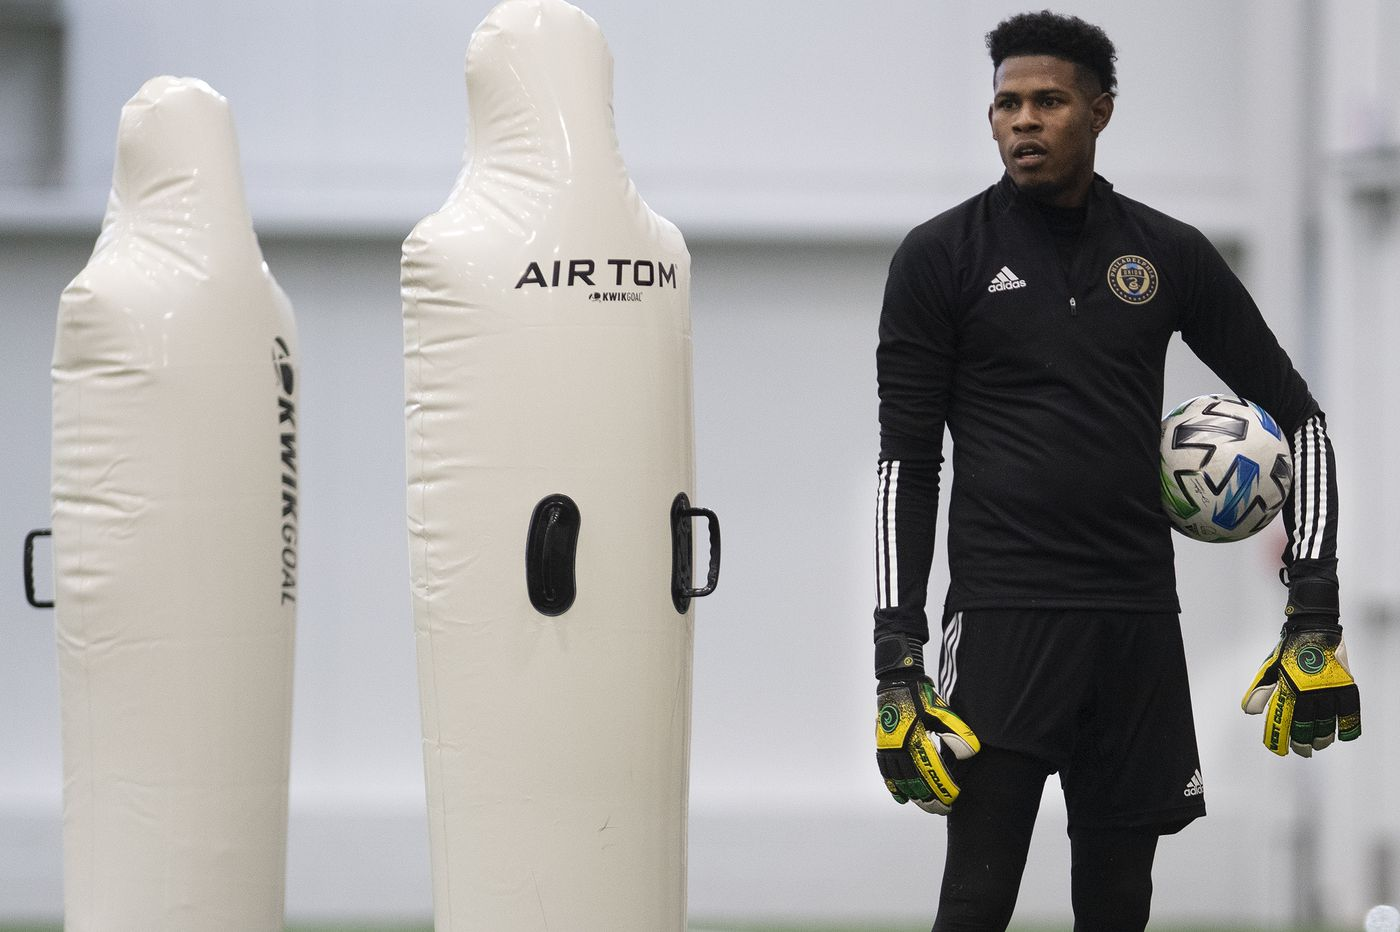 Union goalkeeper Andre Blake should be better this year, because defense will be better